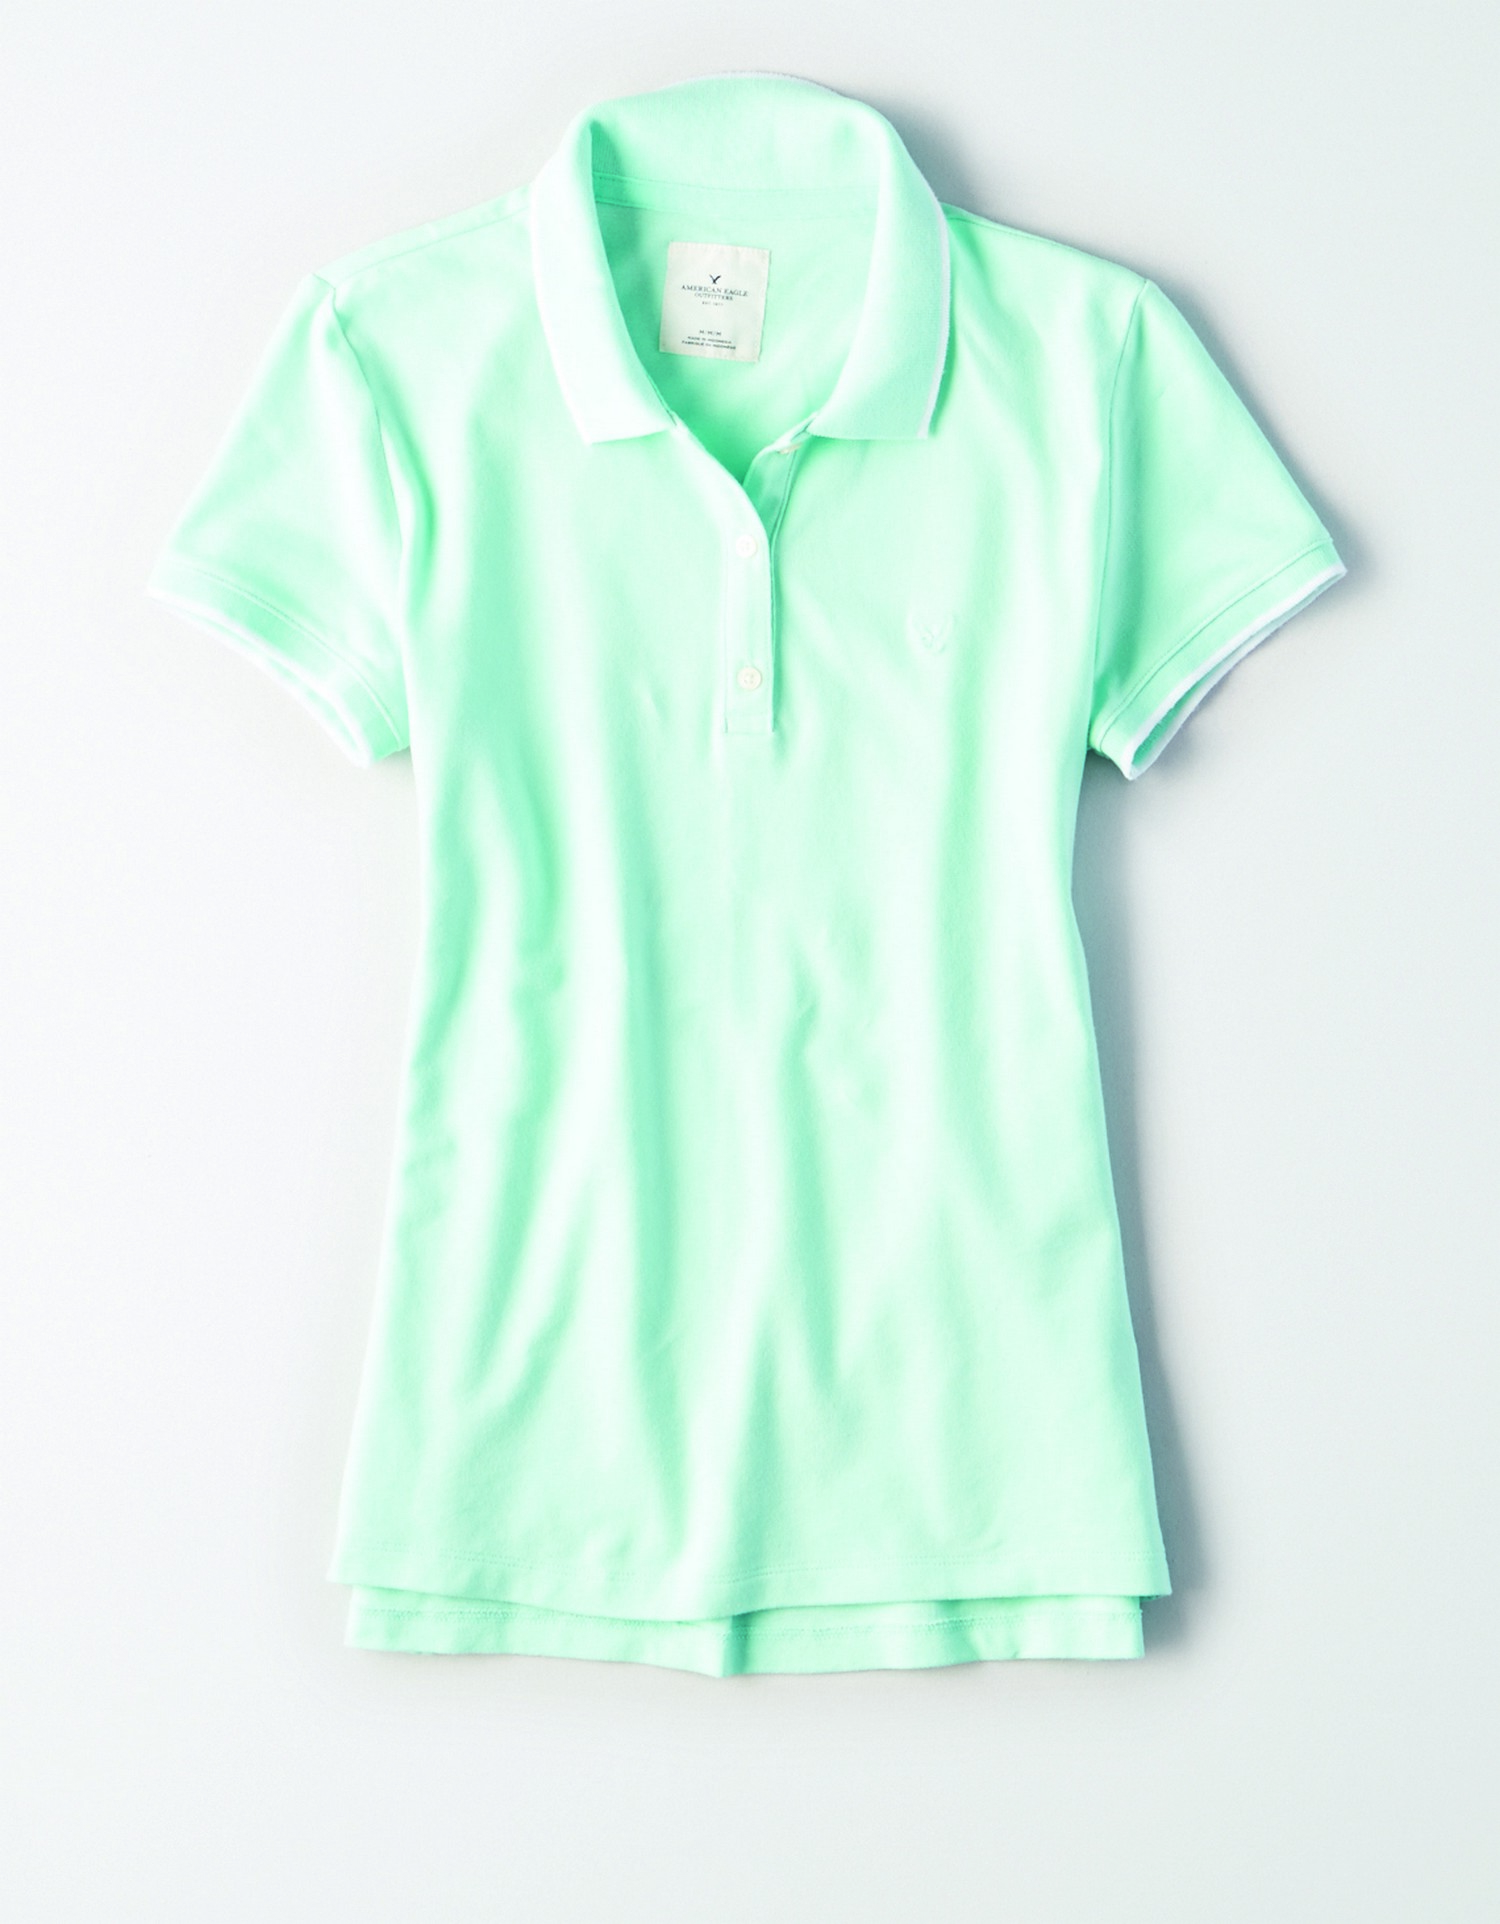 AE - INTL - Apparel - W - Tipped Polo - Mint Green with white Tipping - Mint Green embroidered eagle on left chest JP